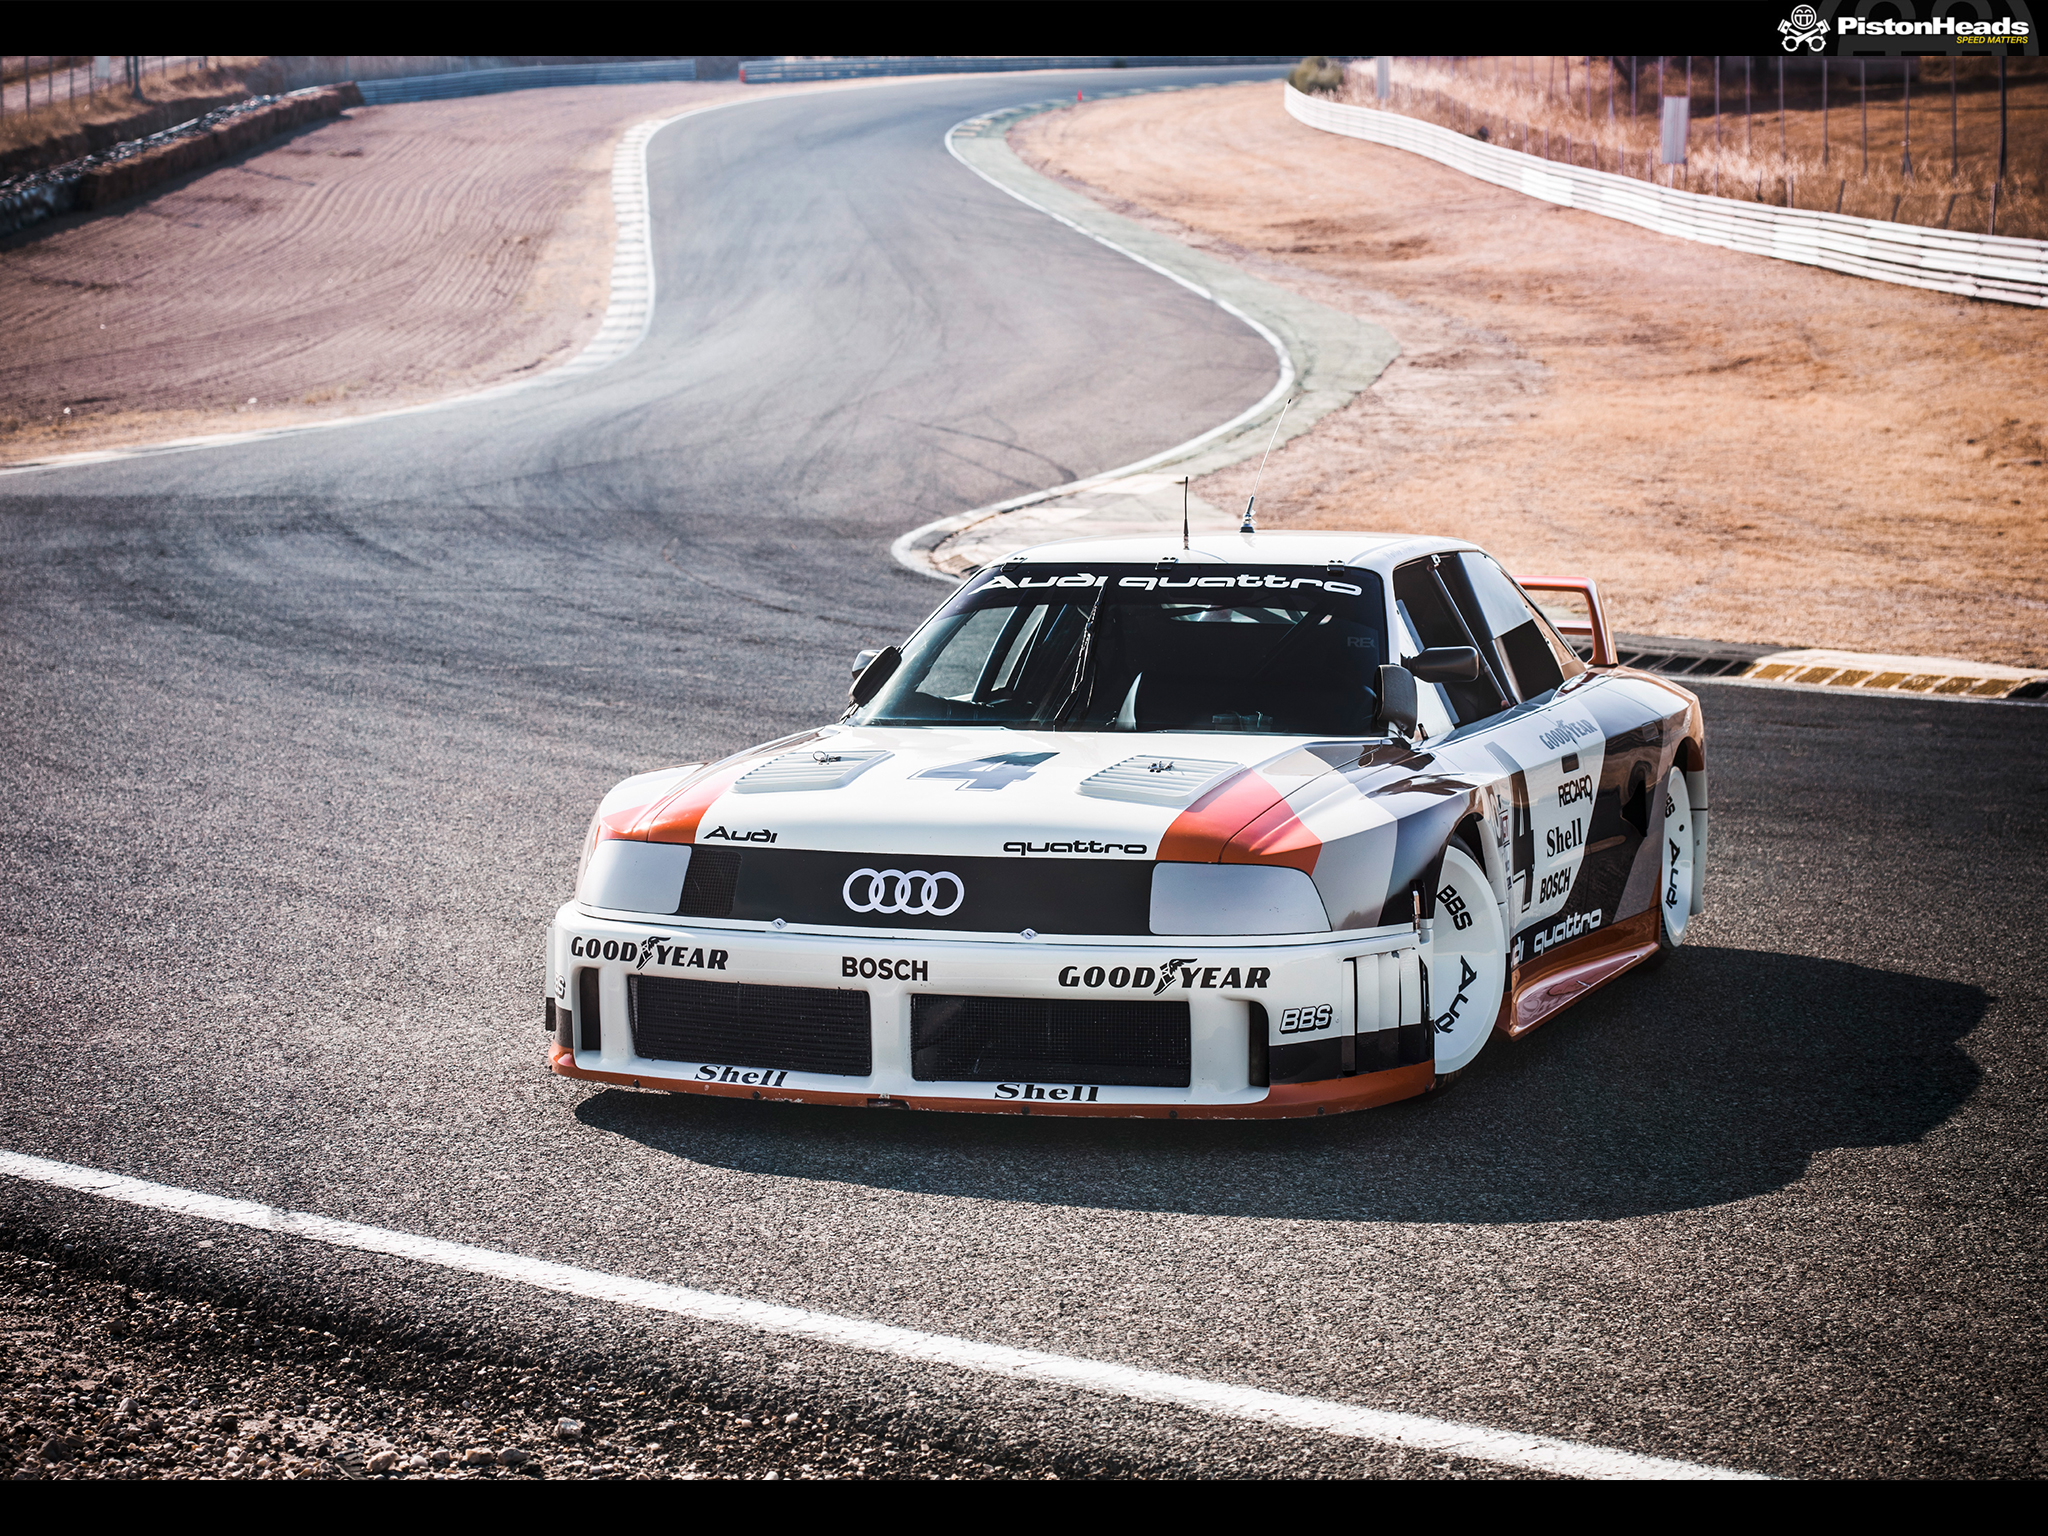 Pic Of The Week Audi 90 Imsa Gto Pistonheads